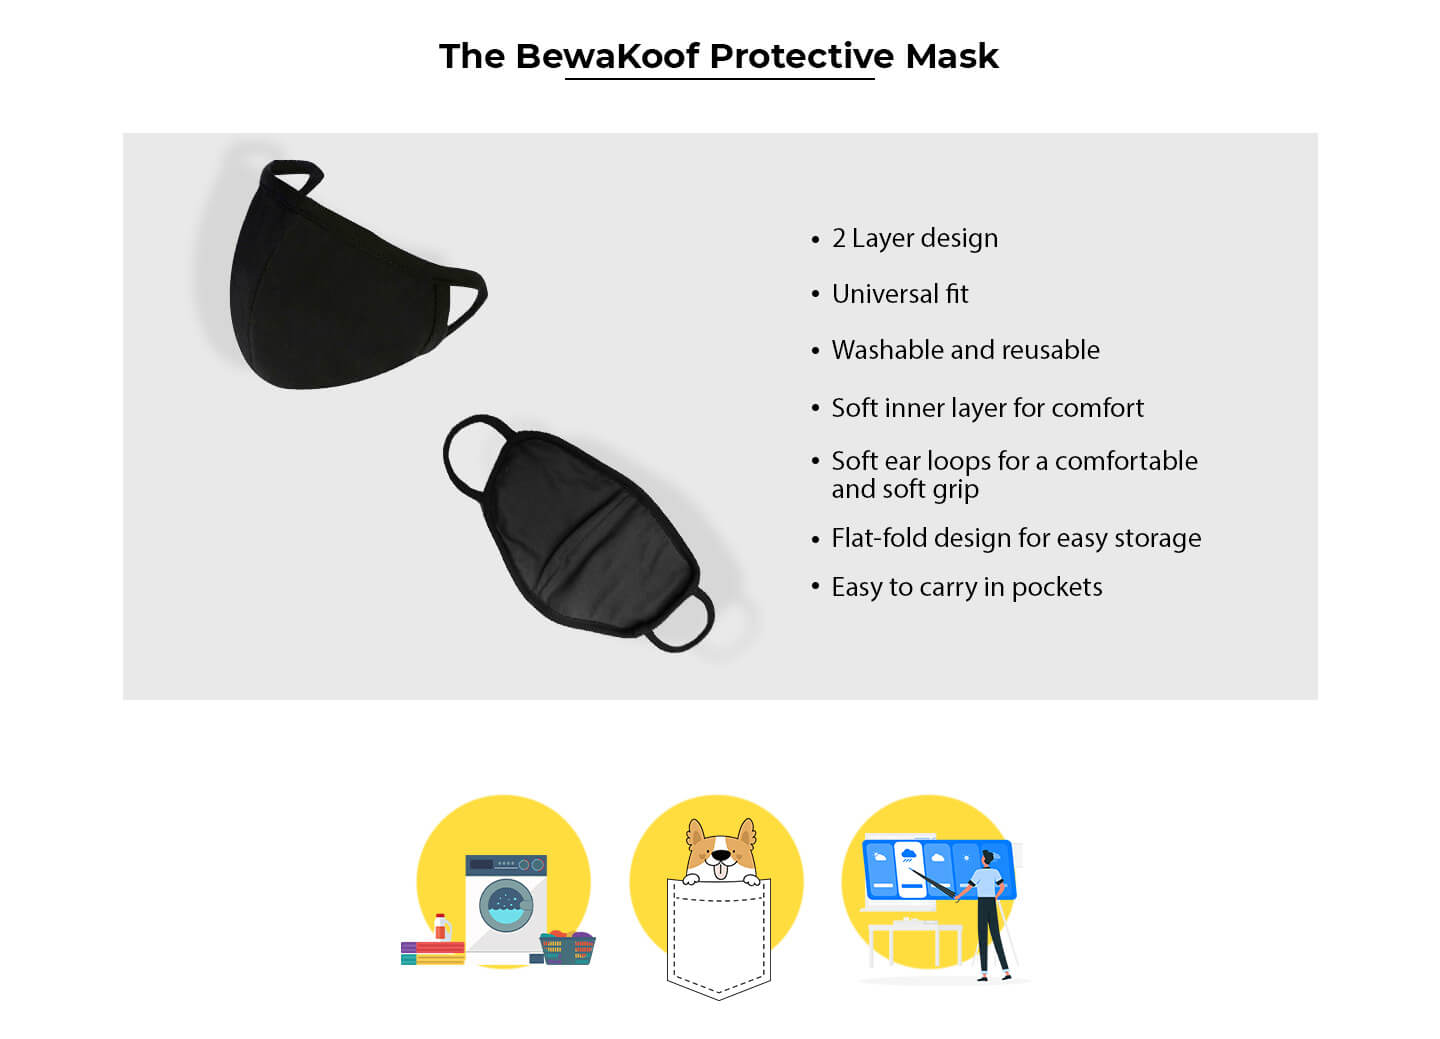 2-Layer Everyday Protective Mask - Pack of 10 (Jet Black-White-Brick Red-Lilac Breeze-Blue Haze) Description Image Website 0@Bewakoof.com